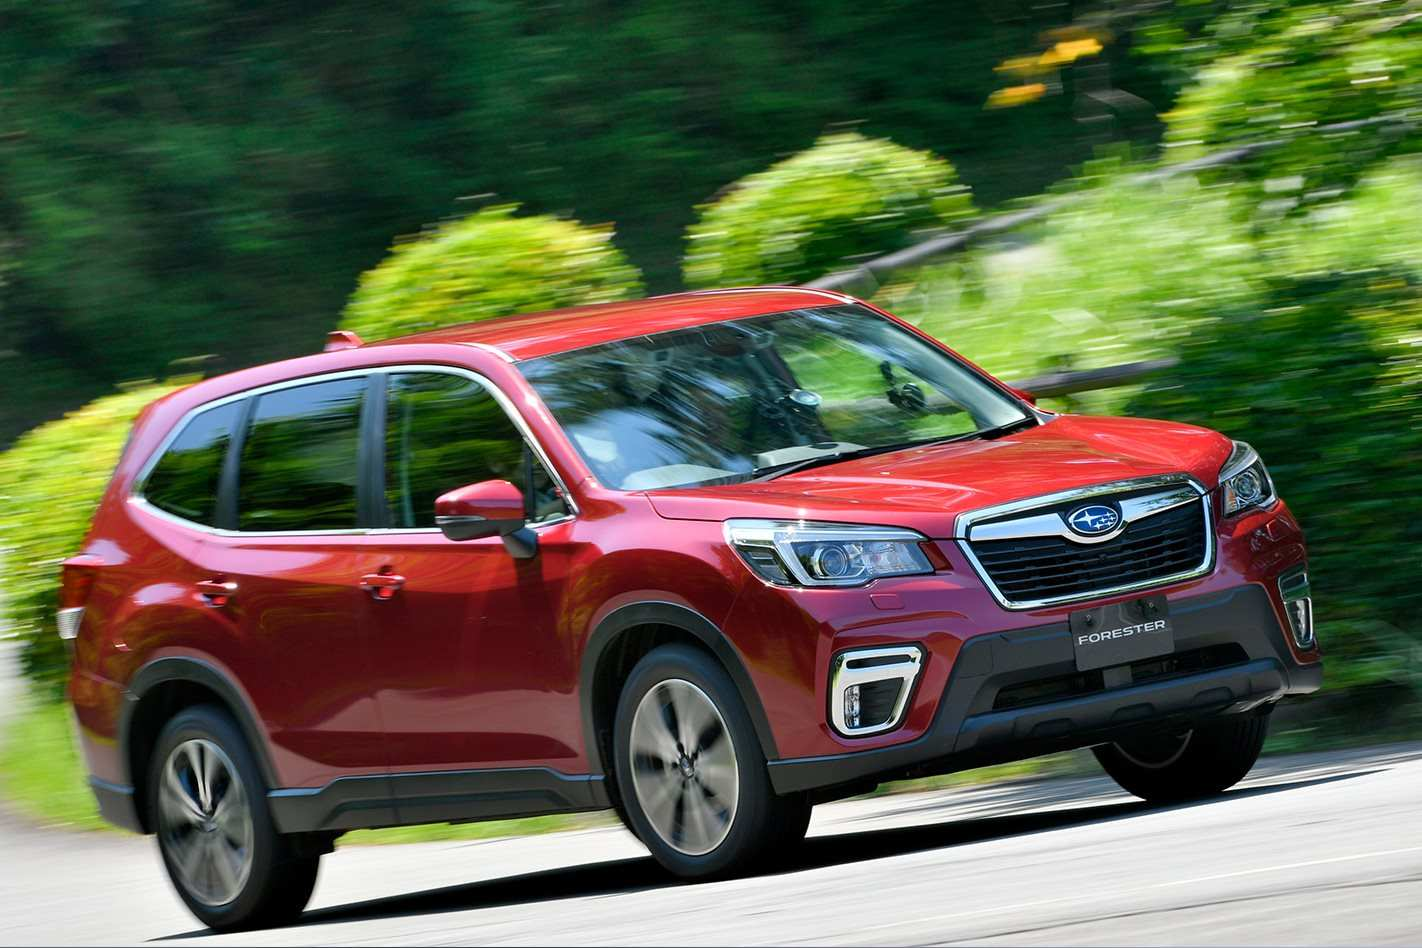 34 Best Review Subaru 2019 Forester Dimensions Picture Exterior and Interior with Subaru 2019 Forester Dimensions Picture